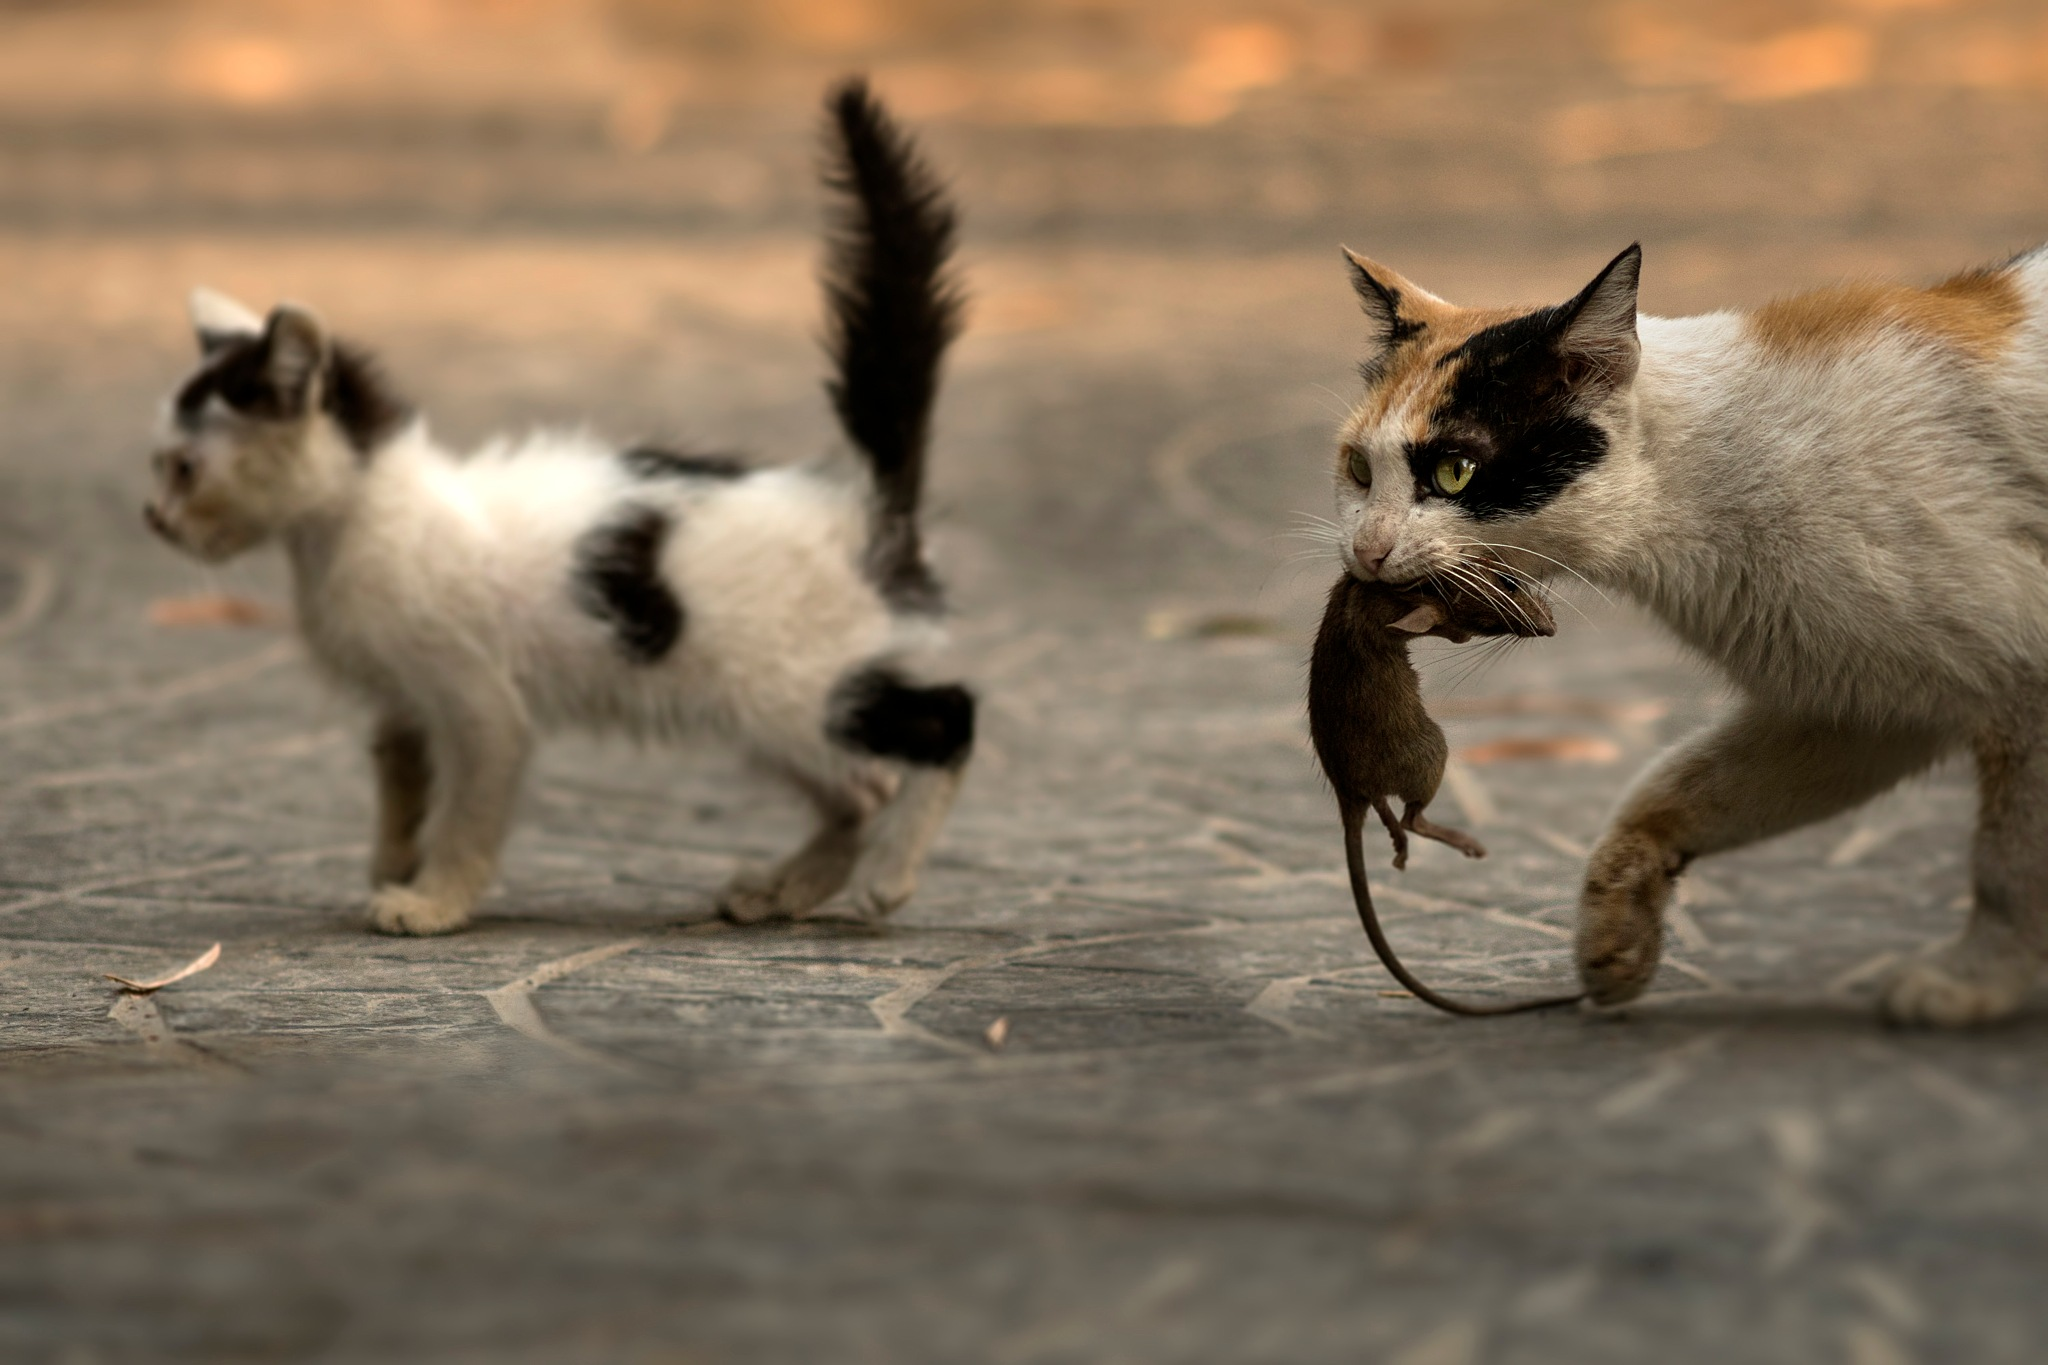 Tom and Jerry by F.A. Bhatti